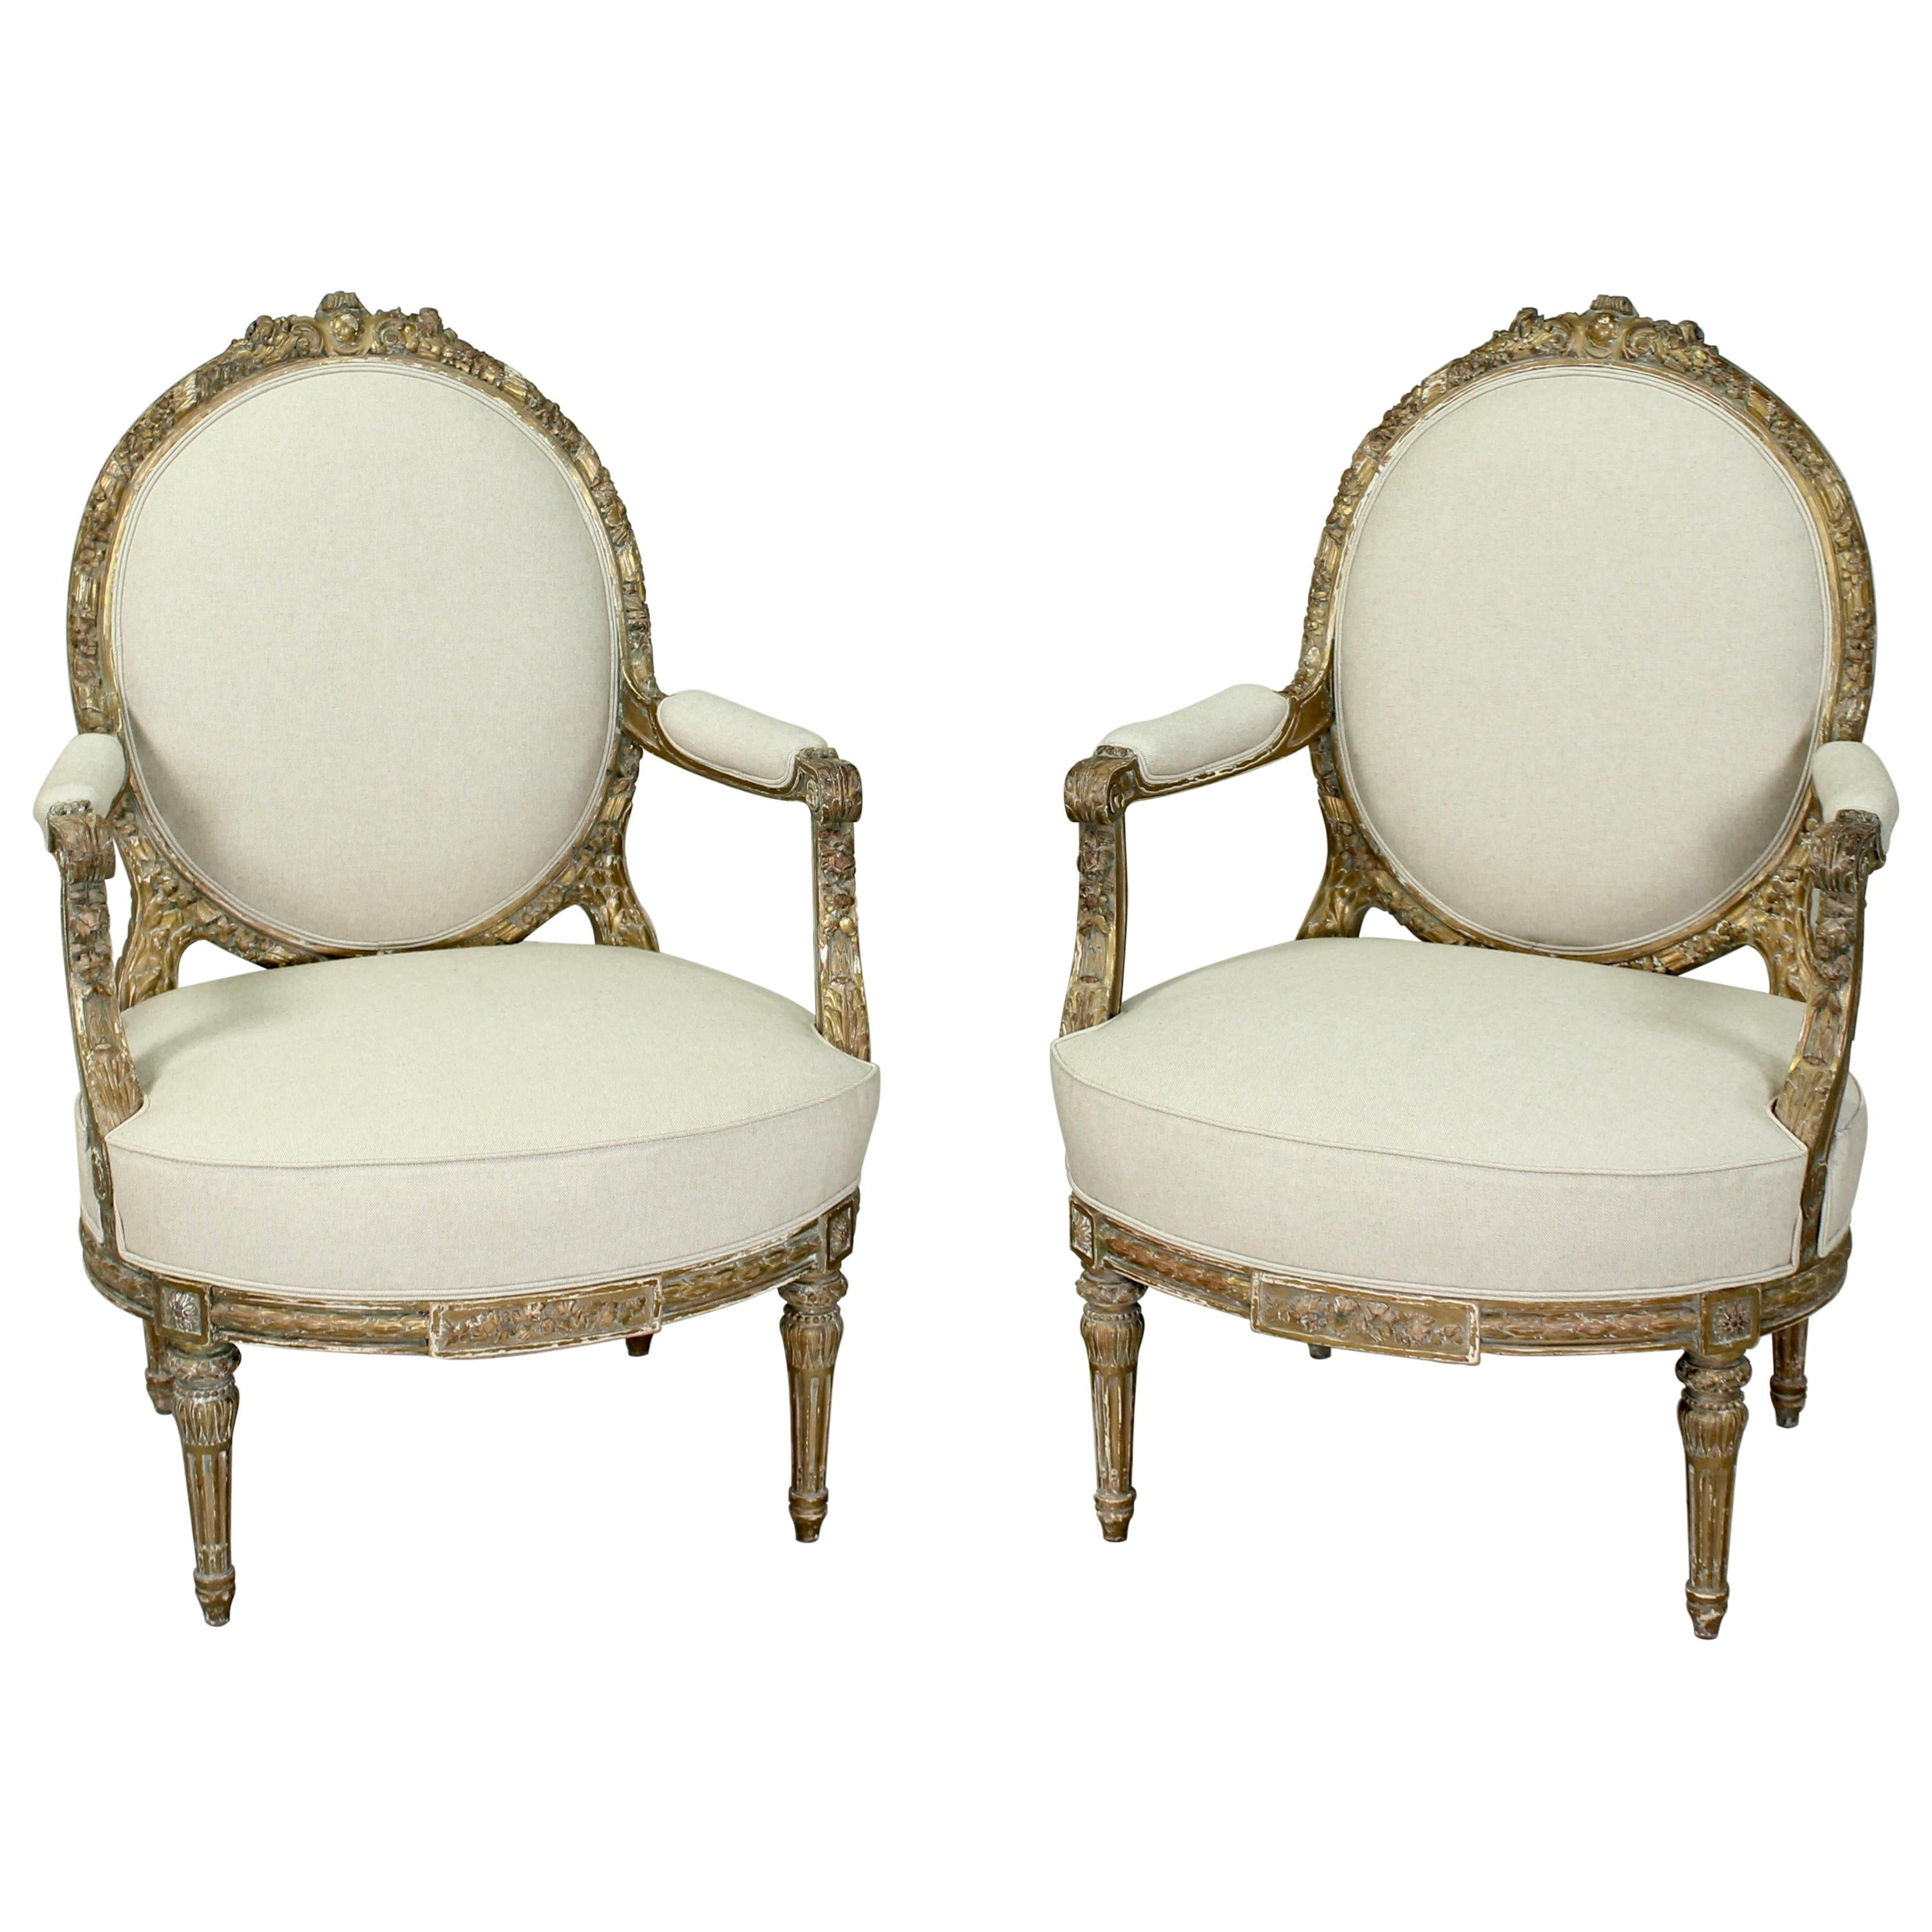 French Louis XVI Giltwood Chairs, a Pair